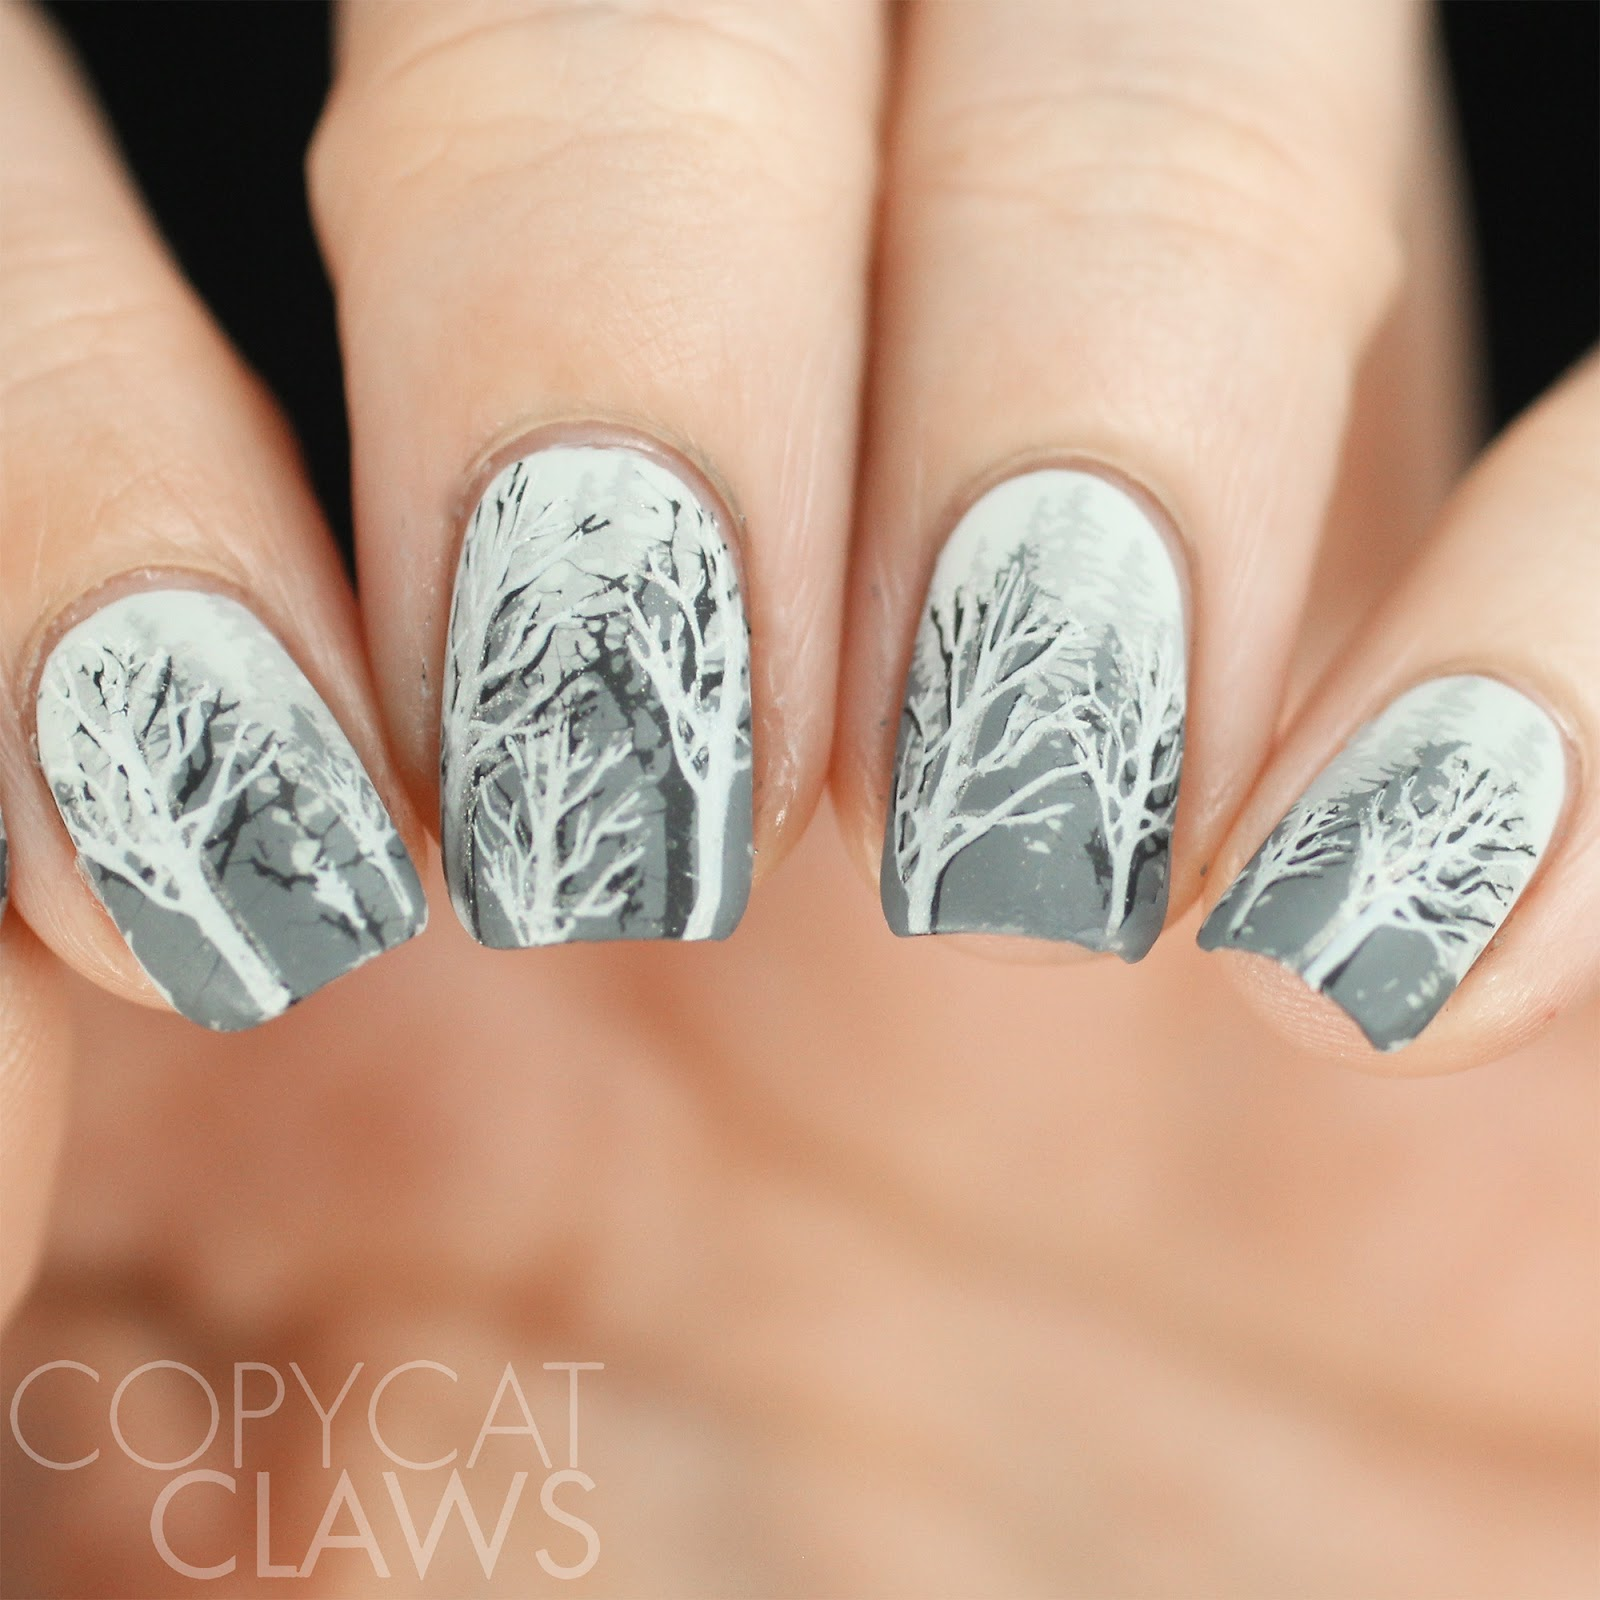 Copycat Claws: The Digit-al Dozen does December - Winter Trees